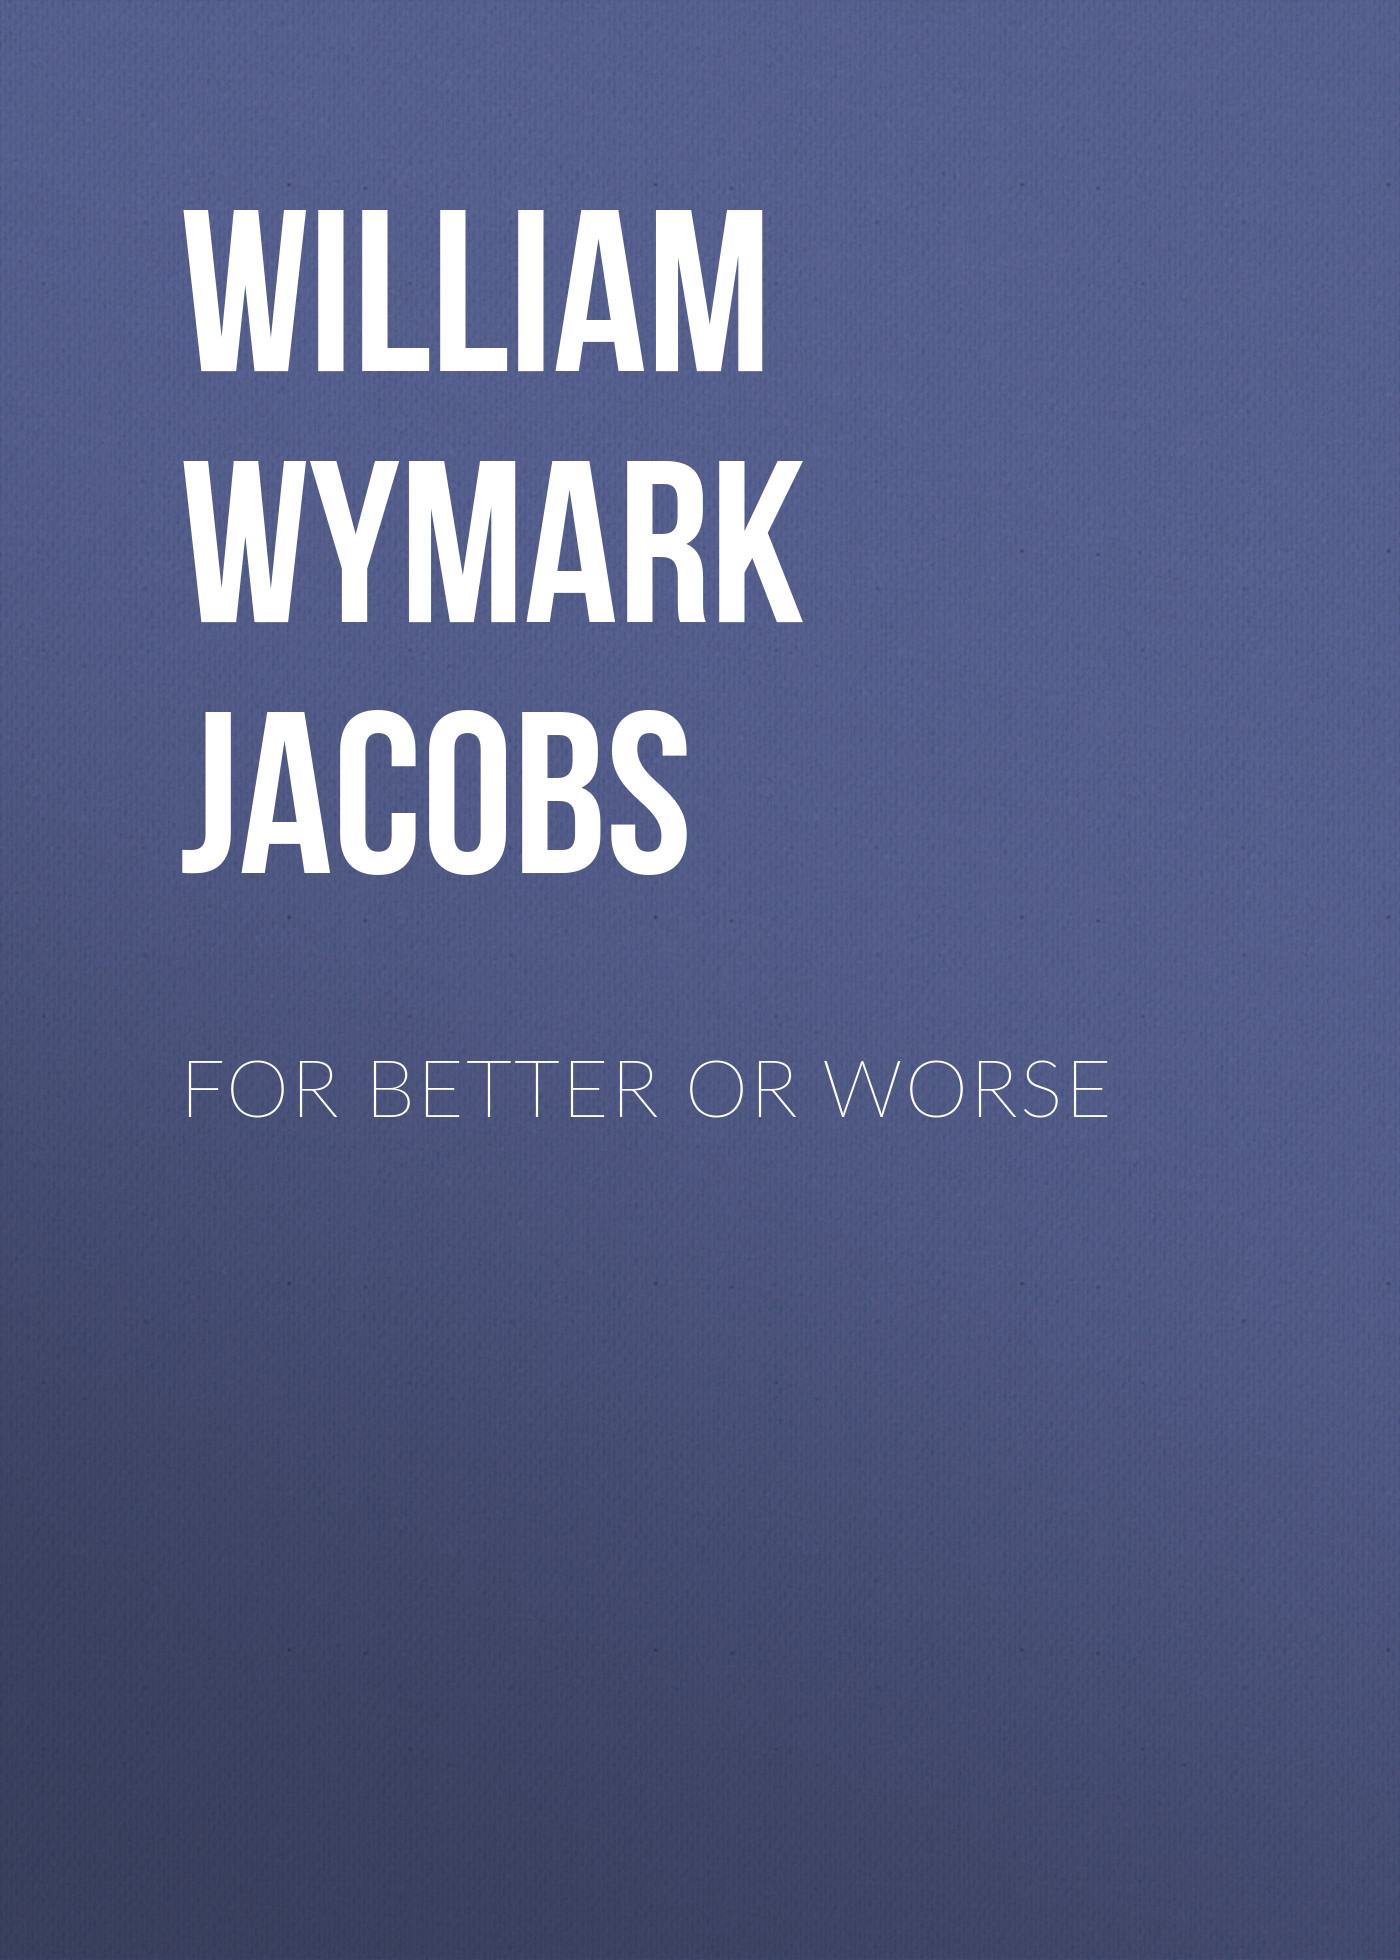 William Wymark Jacobs For Better or Worse